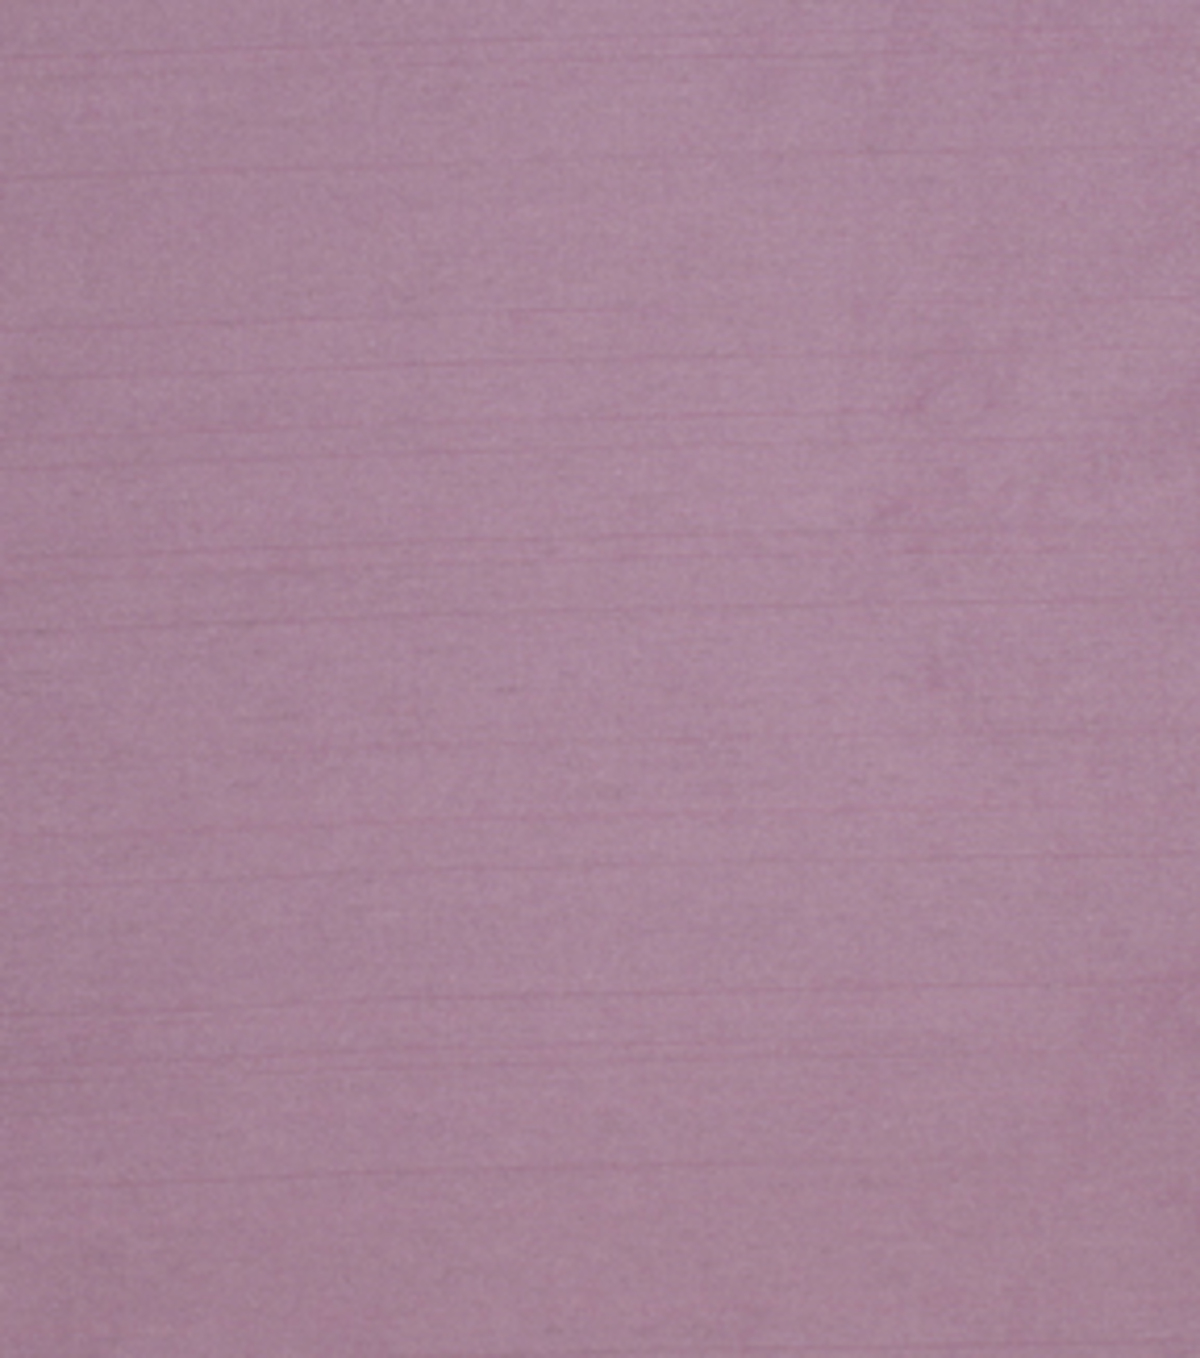 Home Decor 8\u0022x8\u0022 Fabric Swatch-Signature Series Bravo Crocus